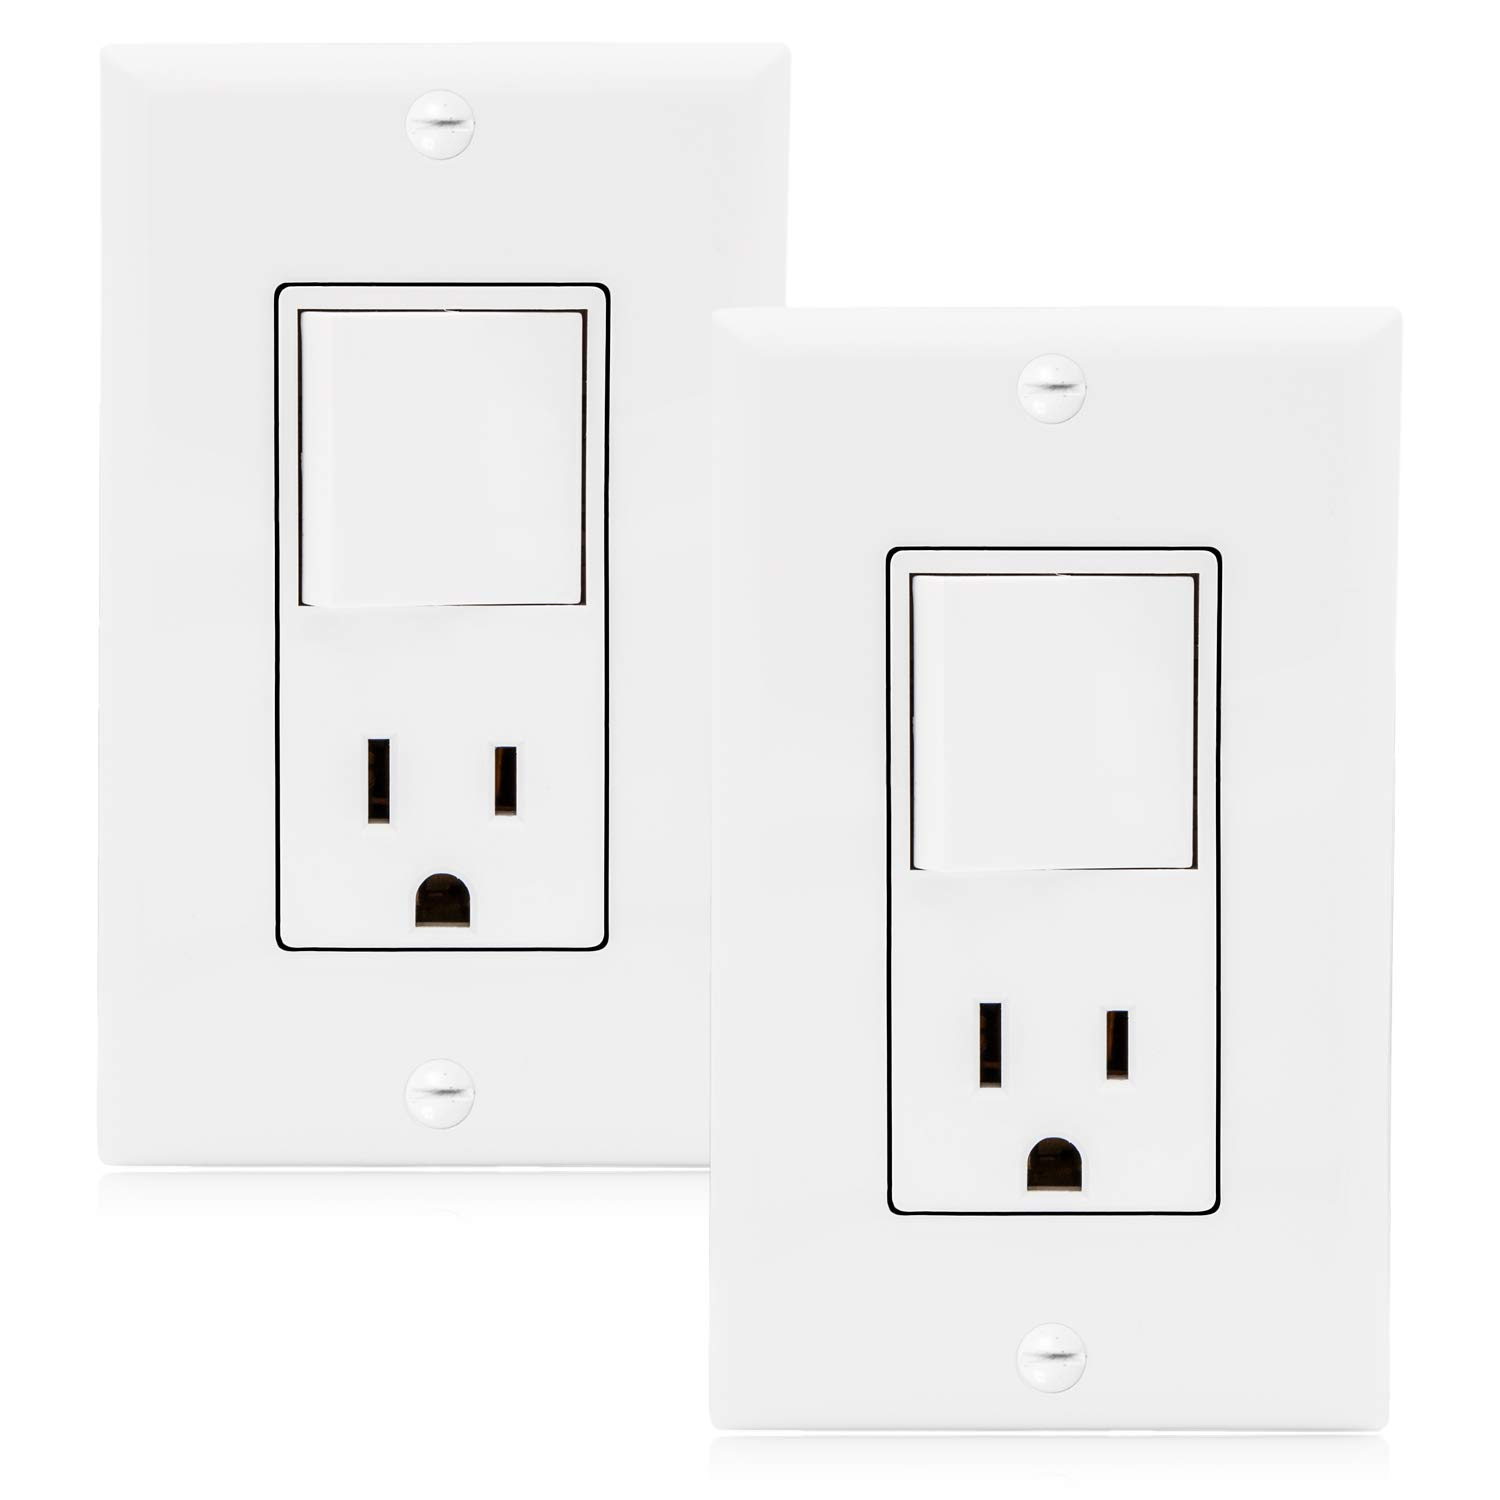 Maxxima Single Pole Combination Rocker Light Switch and Outlet, White, Wall Plates Included (2 Pack) by Maxxima